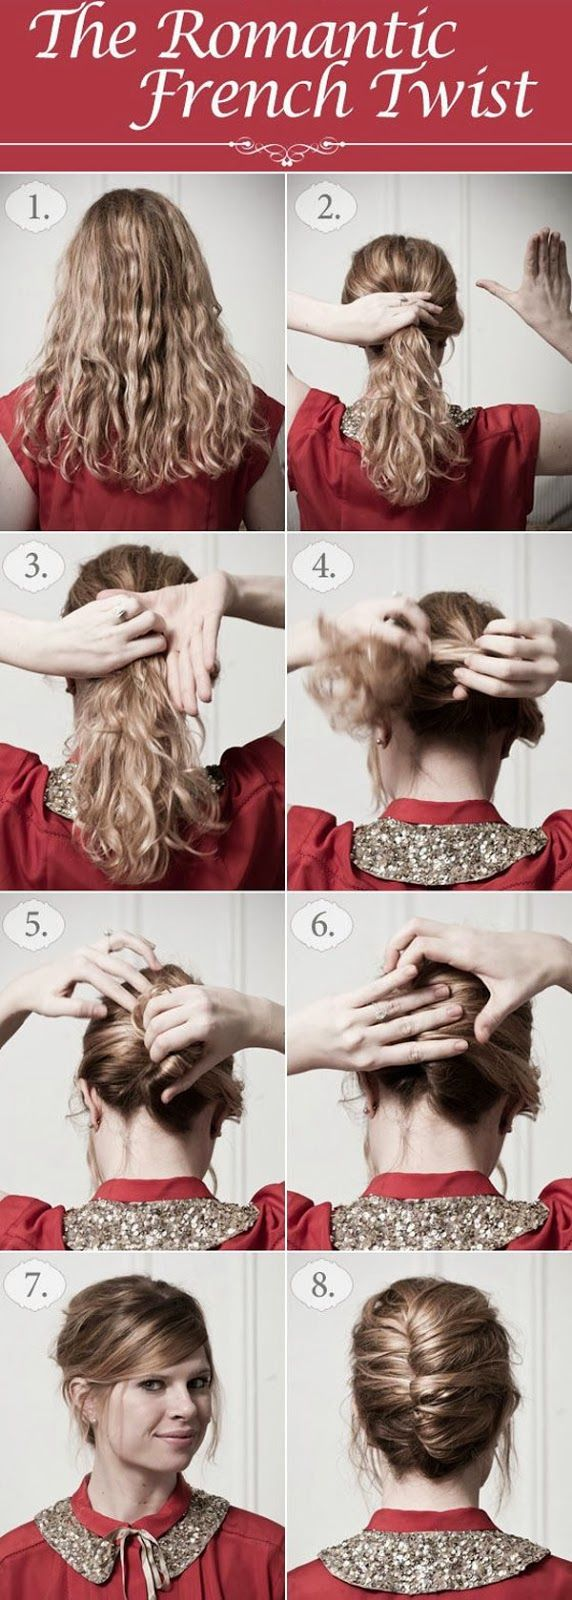 77 best diy hairstyles images on pinterest beauty tips coiffure looking for an updo idea without the hassle try this simple hair tutorial for the always romantic french twist updo solutioingenieria Images